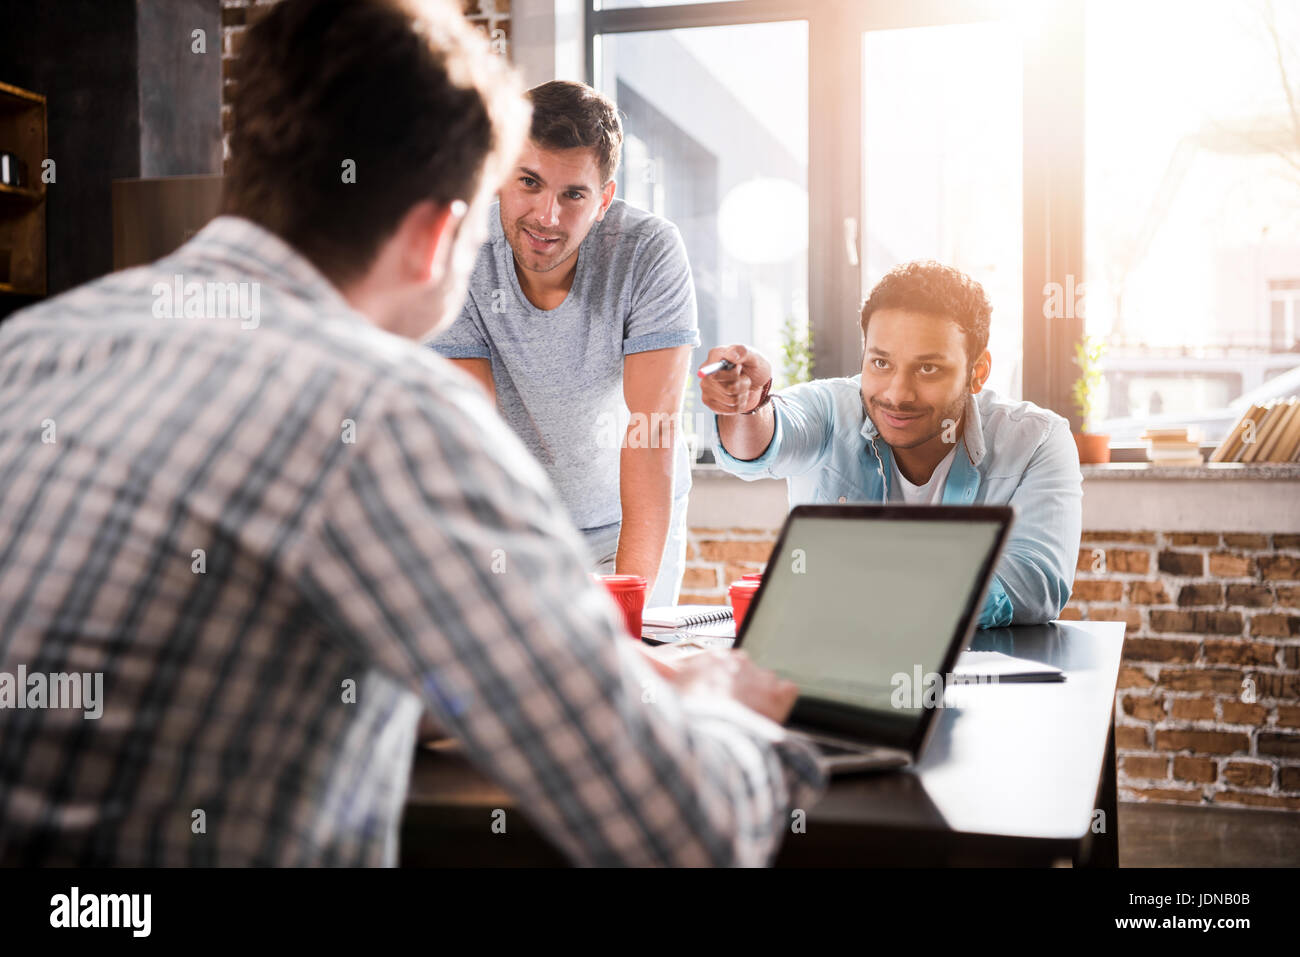 Young man using laptop while colleagues discussing project, small business meeting concept - Stock Image